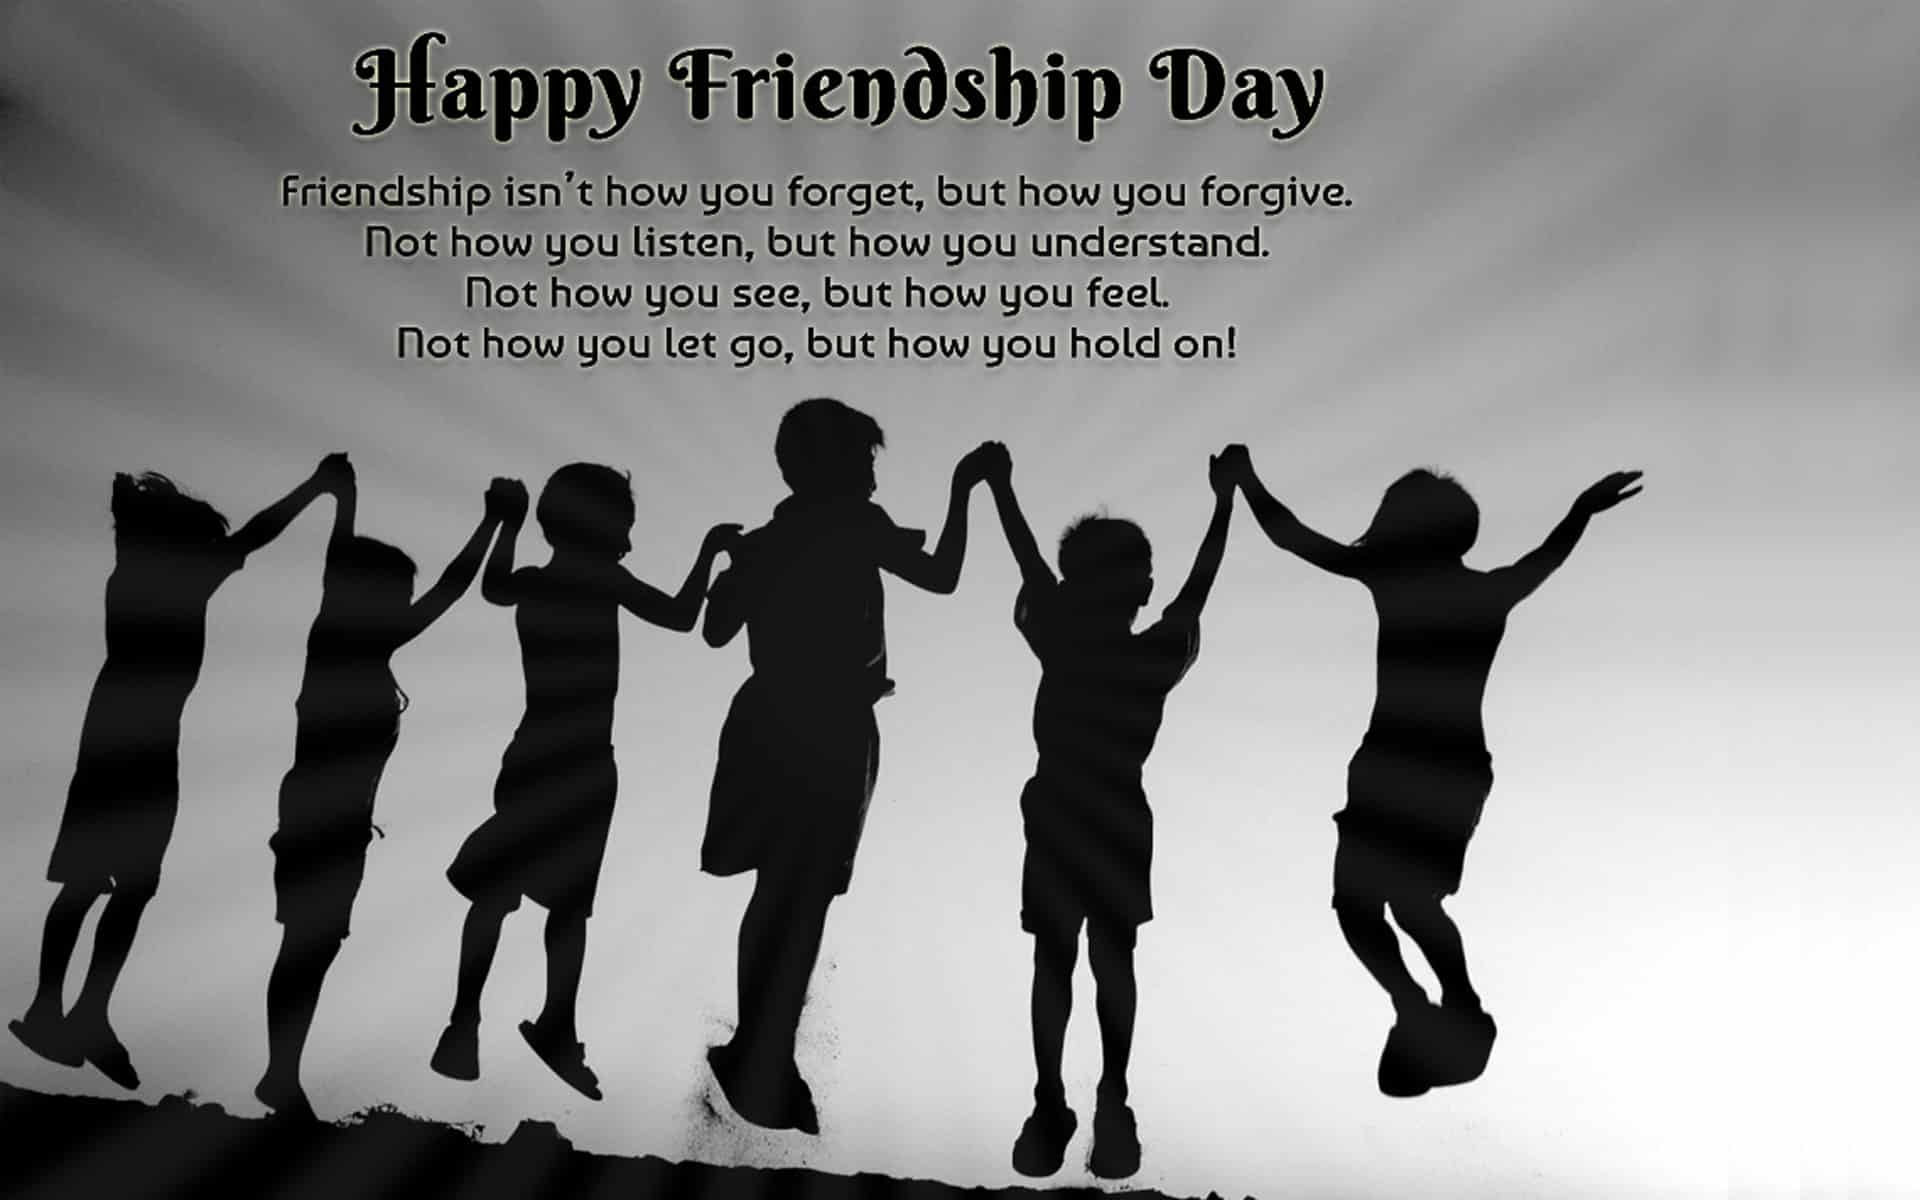 Best happy friendship day wallpaper 2017 hd download festivityhub happy friendship day wallpapers 1080p altavistaventures Image collections